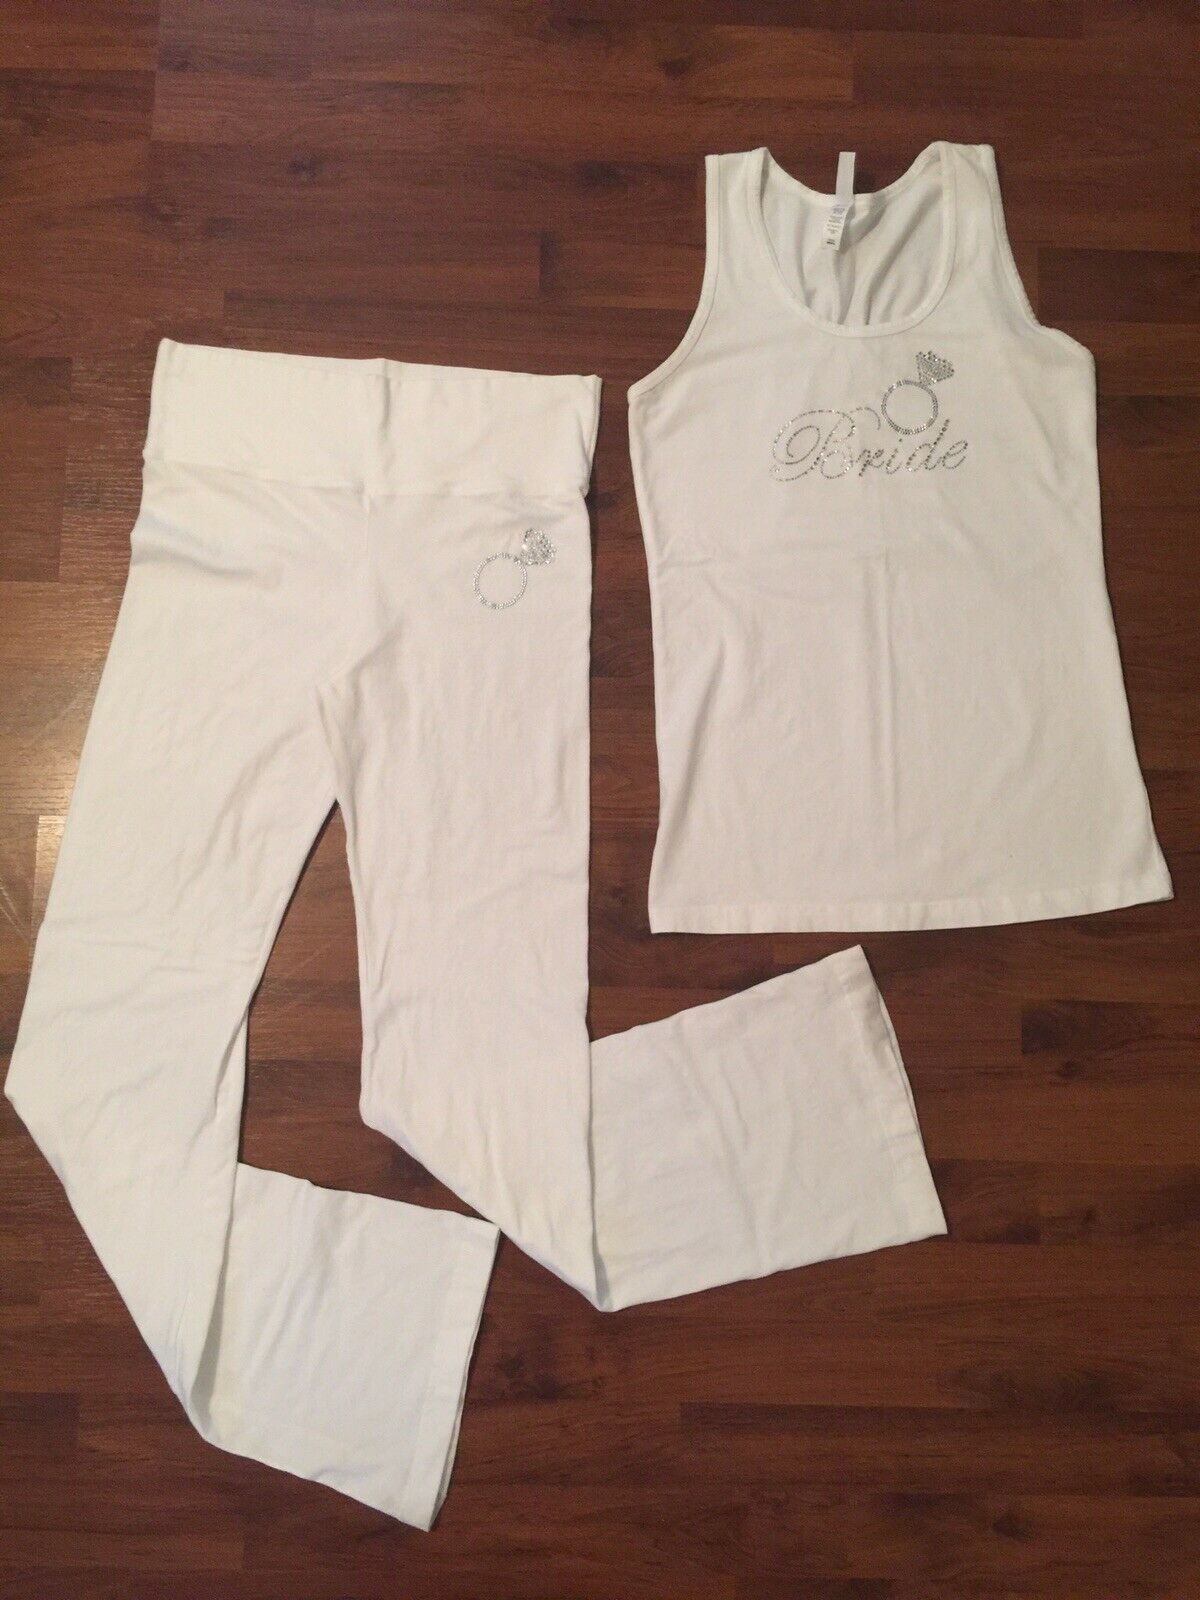 Womens Size Small Long In Your Face White Bride Tank Pants Bling Set